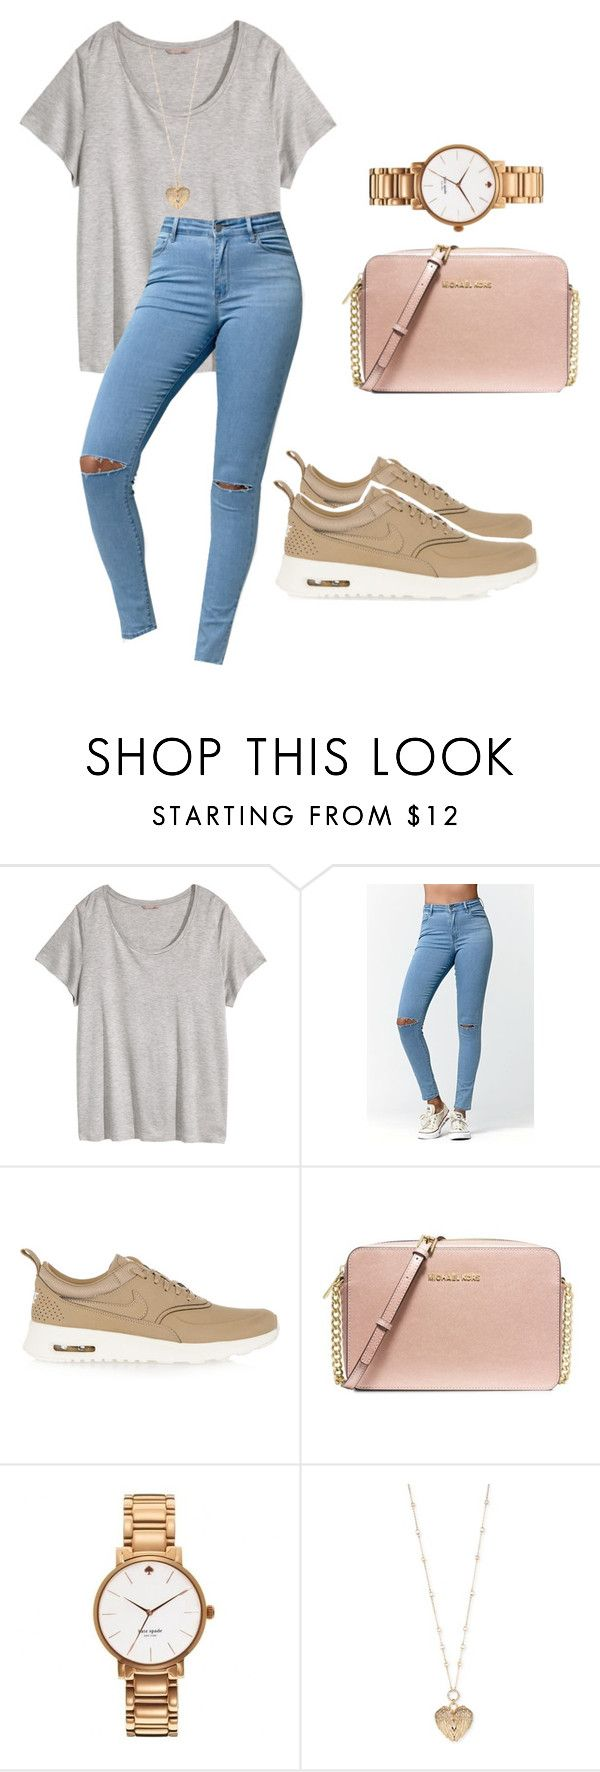 """""""Untitled #33"""" by sweetgeorgiapeaches ❤ liked on Polyvore featuring H&M, Bullhead Denim Co., NIKE, MICHAEL Michael Kors, Kate Spade and Betsey Johnson"""